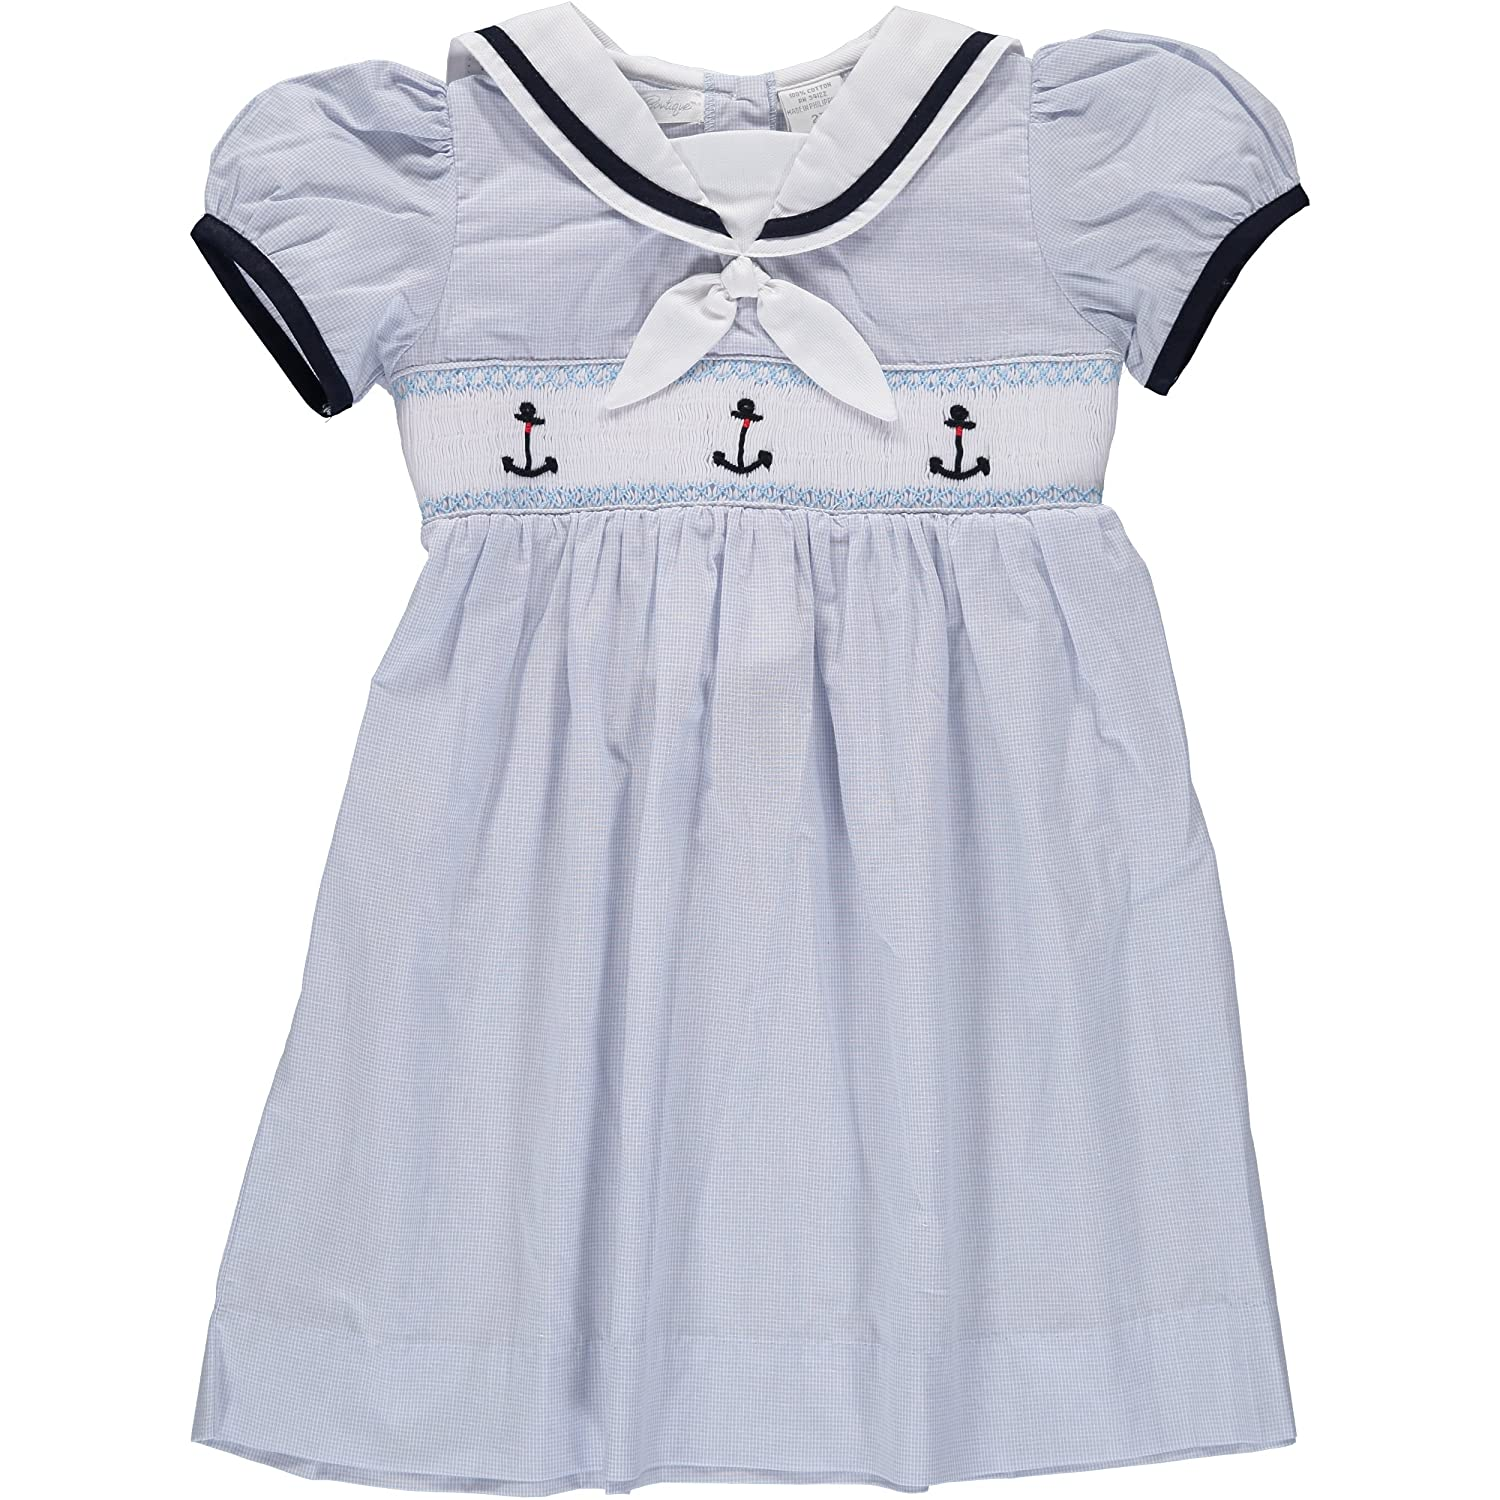 1940s Children's Clothing: Girls, Boys, Baby, Toddler Smocked Anchor Blue Dress Baby Toddler Carriage Boutique  $58.00 AT vintagedancer.com